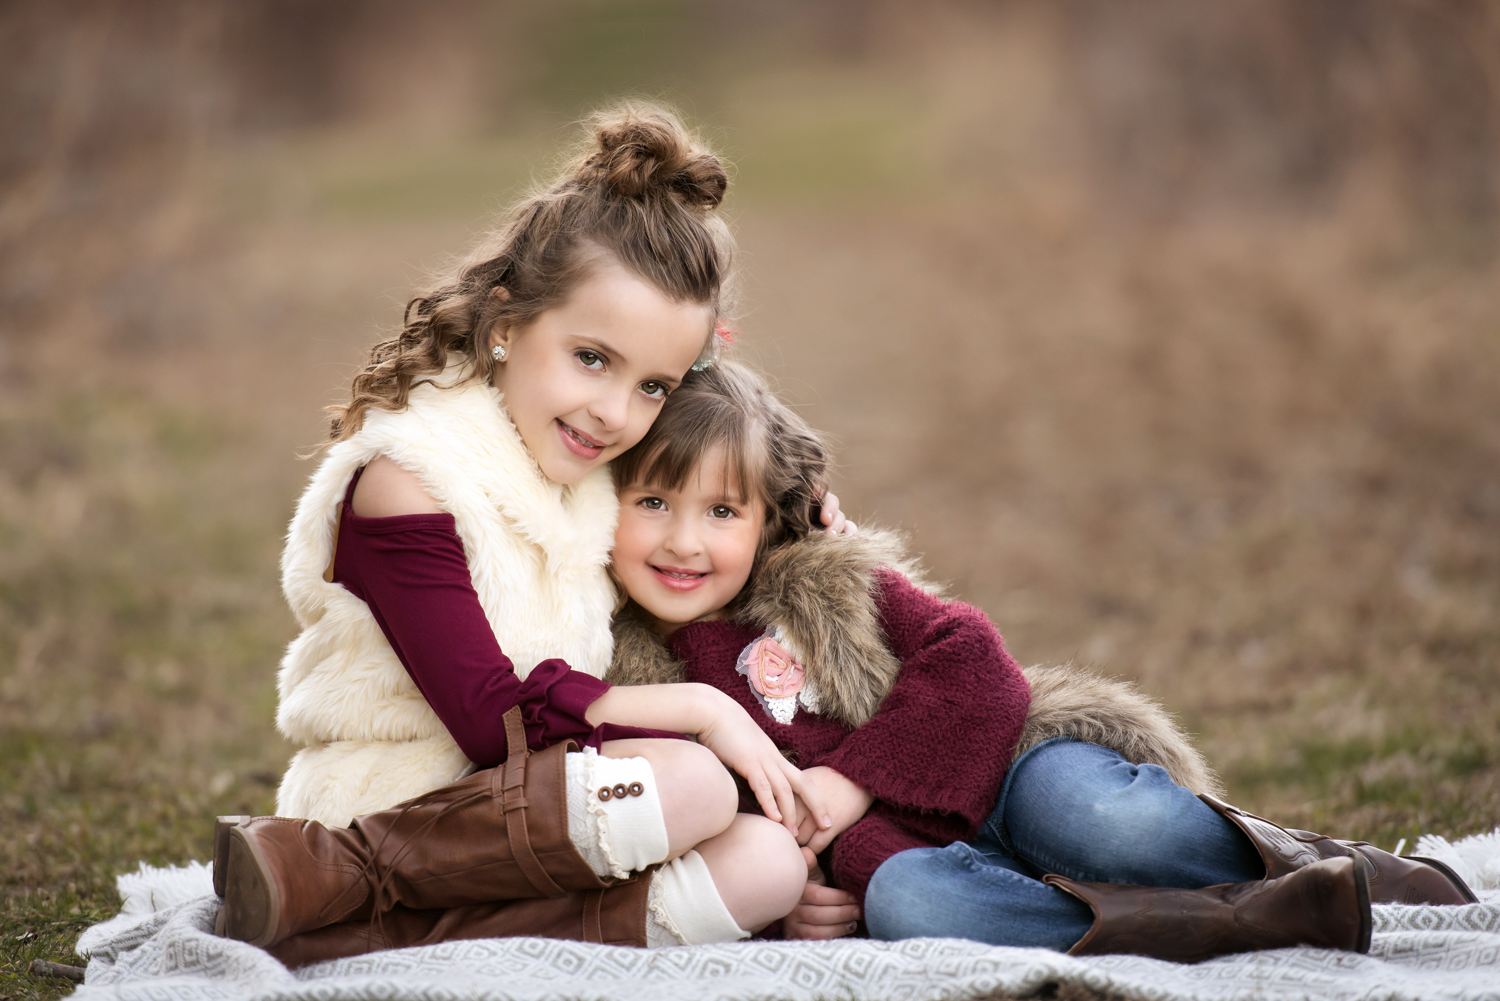 Family loving each other, Canonsburg, Family Photography, little girls, sister. cuddled